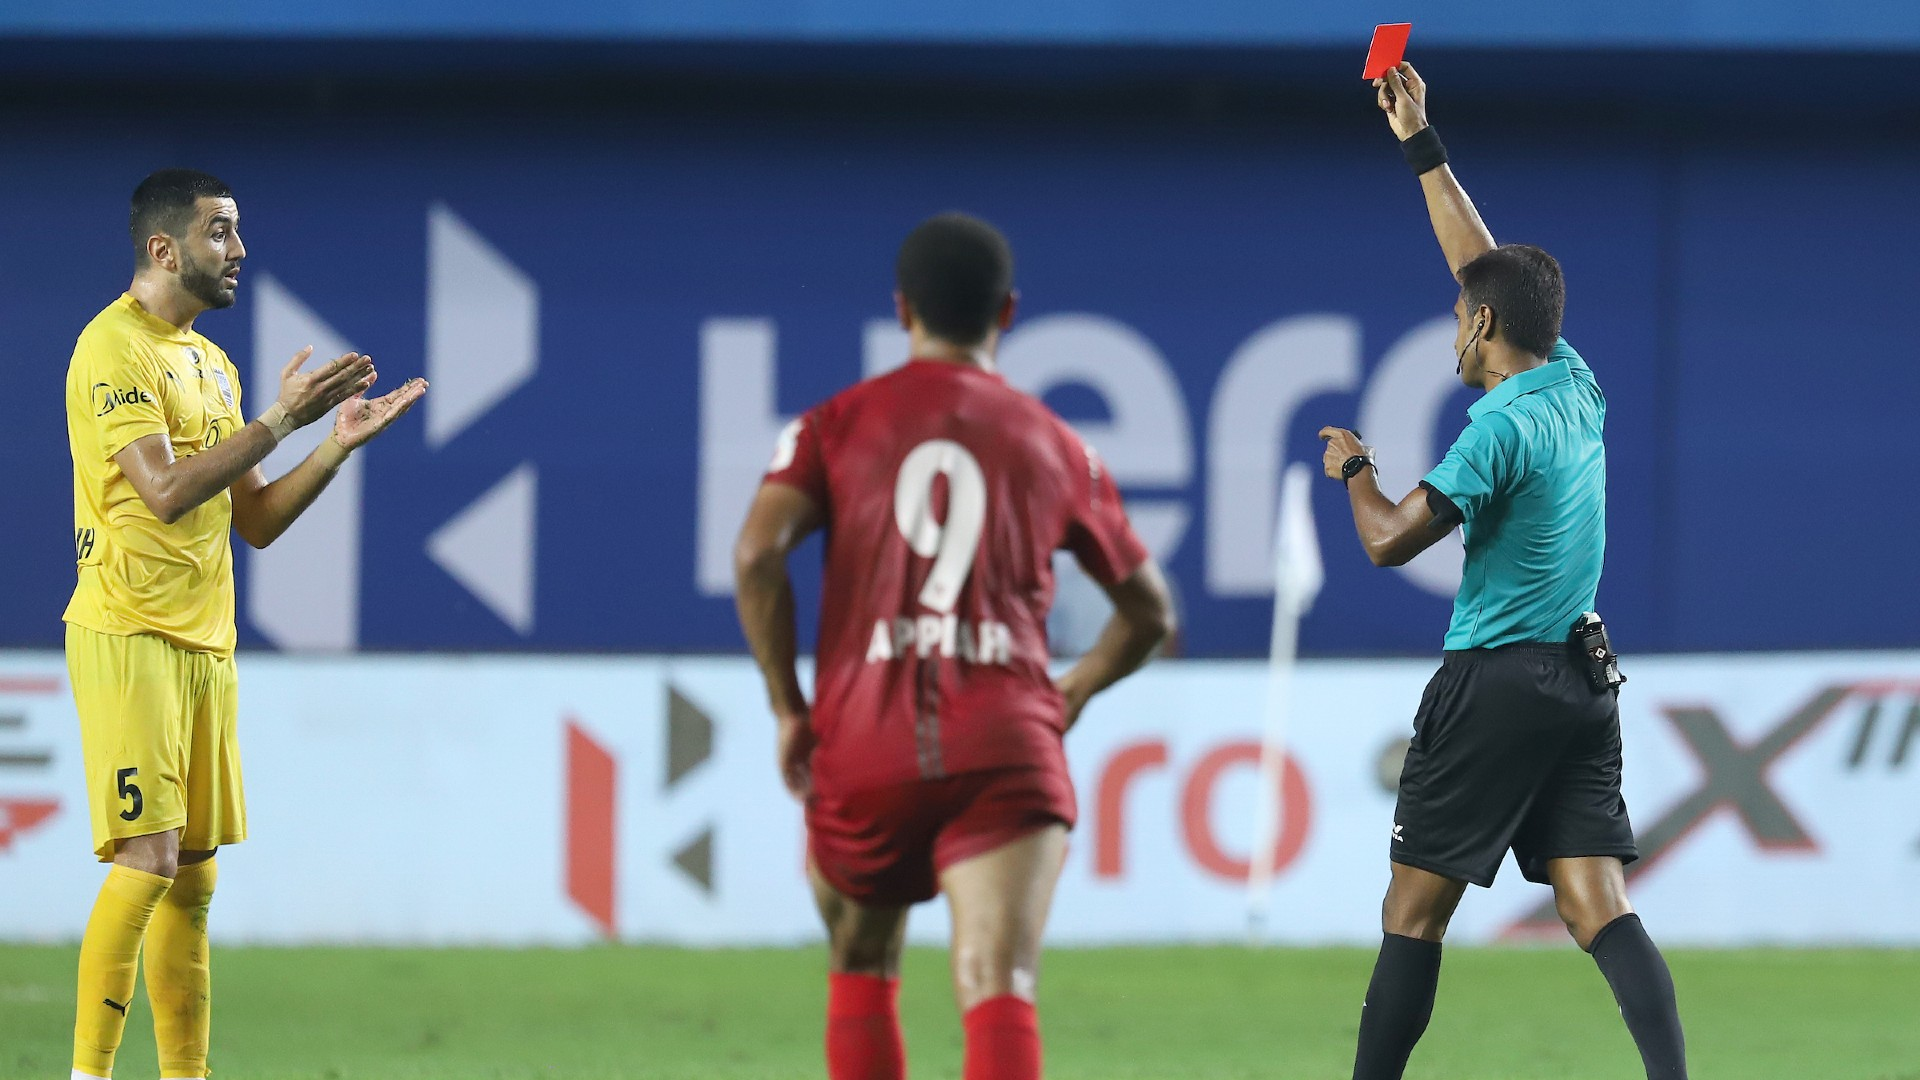 ISL: Ahmed Jahouh and the players who got sent off on their debut